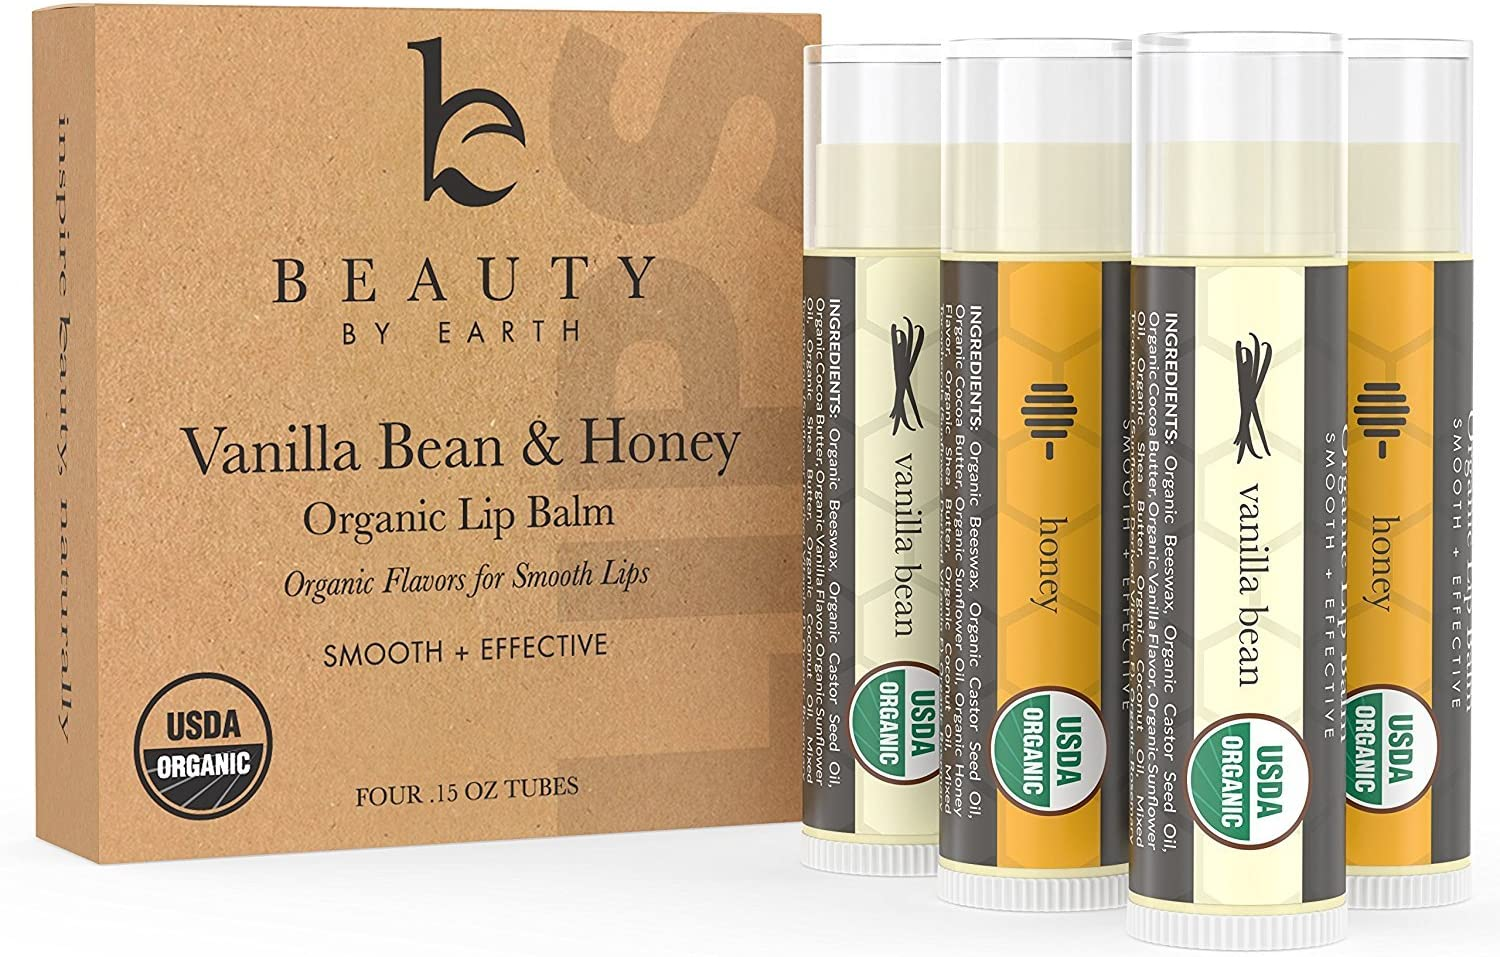 There are many gift ideas for women over 40 that are actually very useful and a set of yummy organic lip balms is one of them. These lip balms are going to light up the face of your loved one and she's going to cherish them so much. The lip balms have two different flavors that are vanilla and honey bean and they keep lips moisturized in the harsh winter weather. The plush point is that they smell and taste so good all day long.